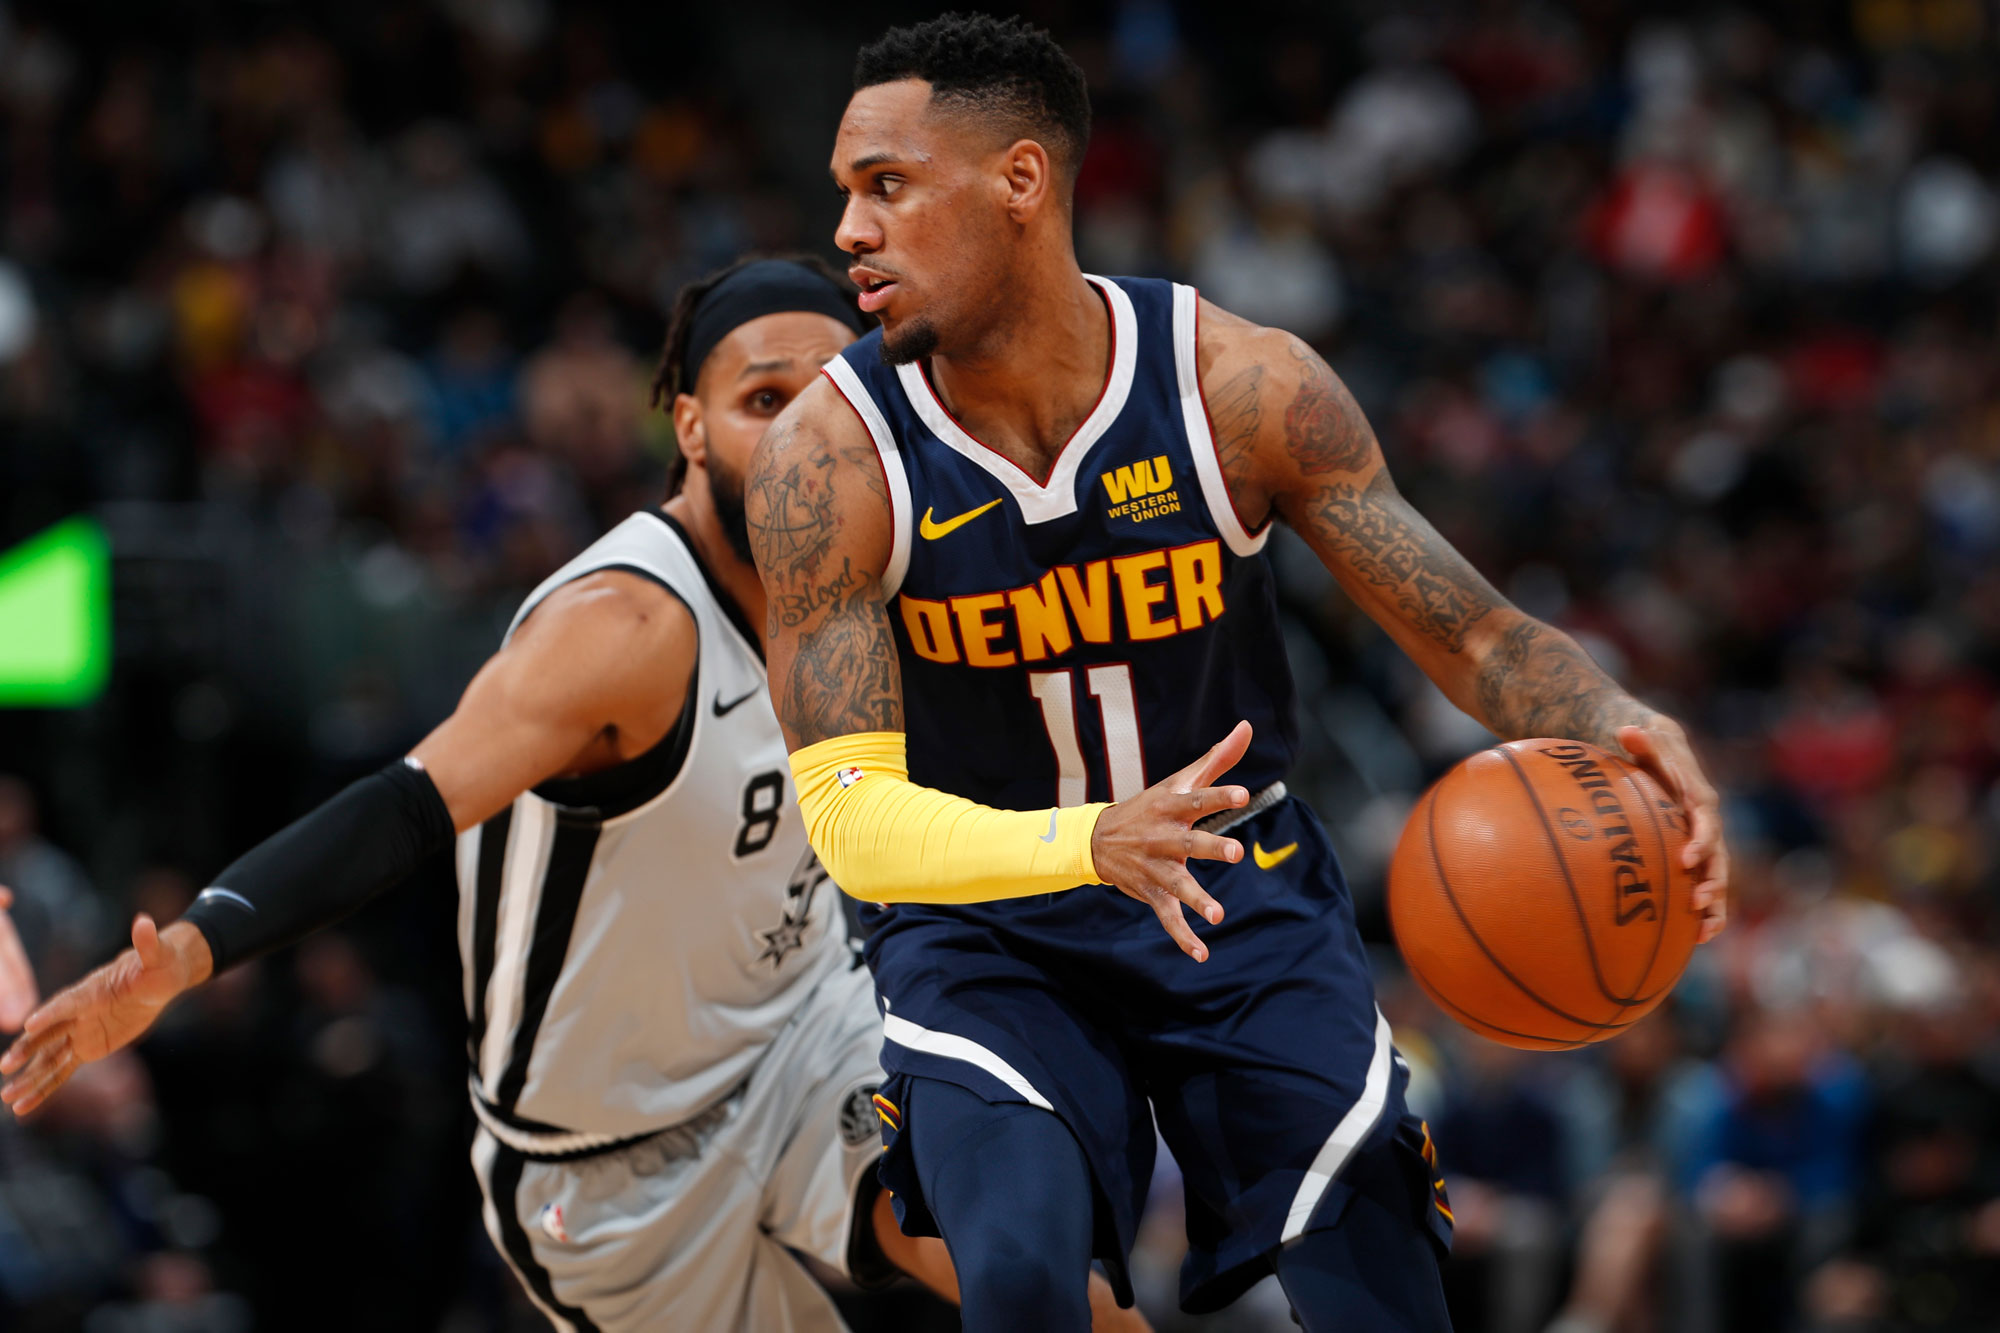 <p>Denver Nuggets guard Monte Morris, front, looks to pass the ball as San Antonio Spurs guard Patty Mills defends during the second half of an NBA basketball game Wednesday, April 3, 2019, in Denver. The Nuggets won 113-85.</p>